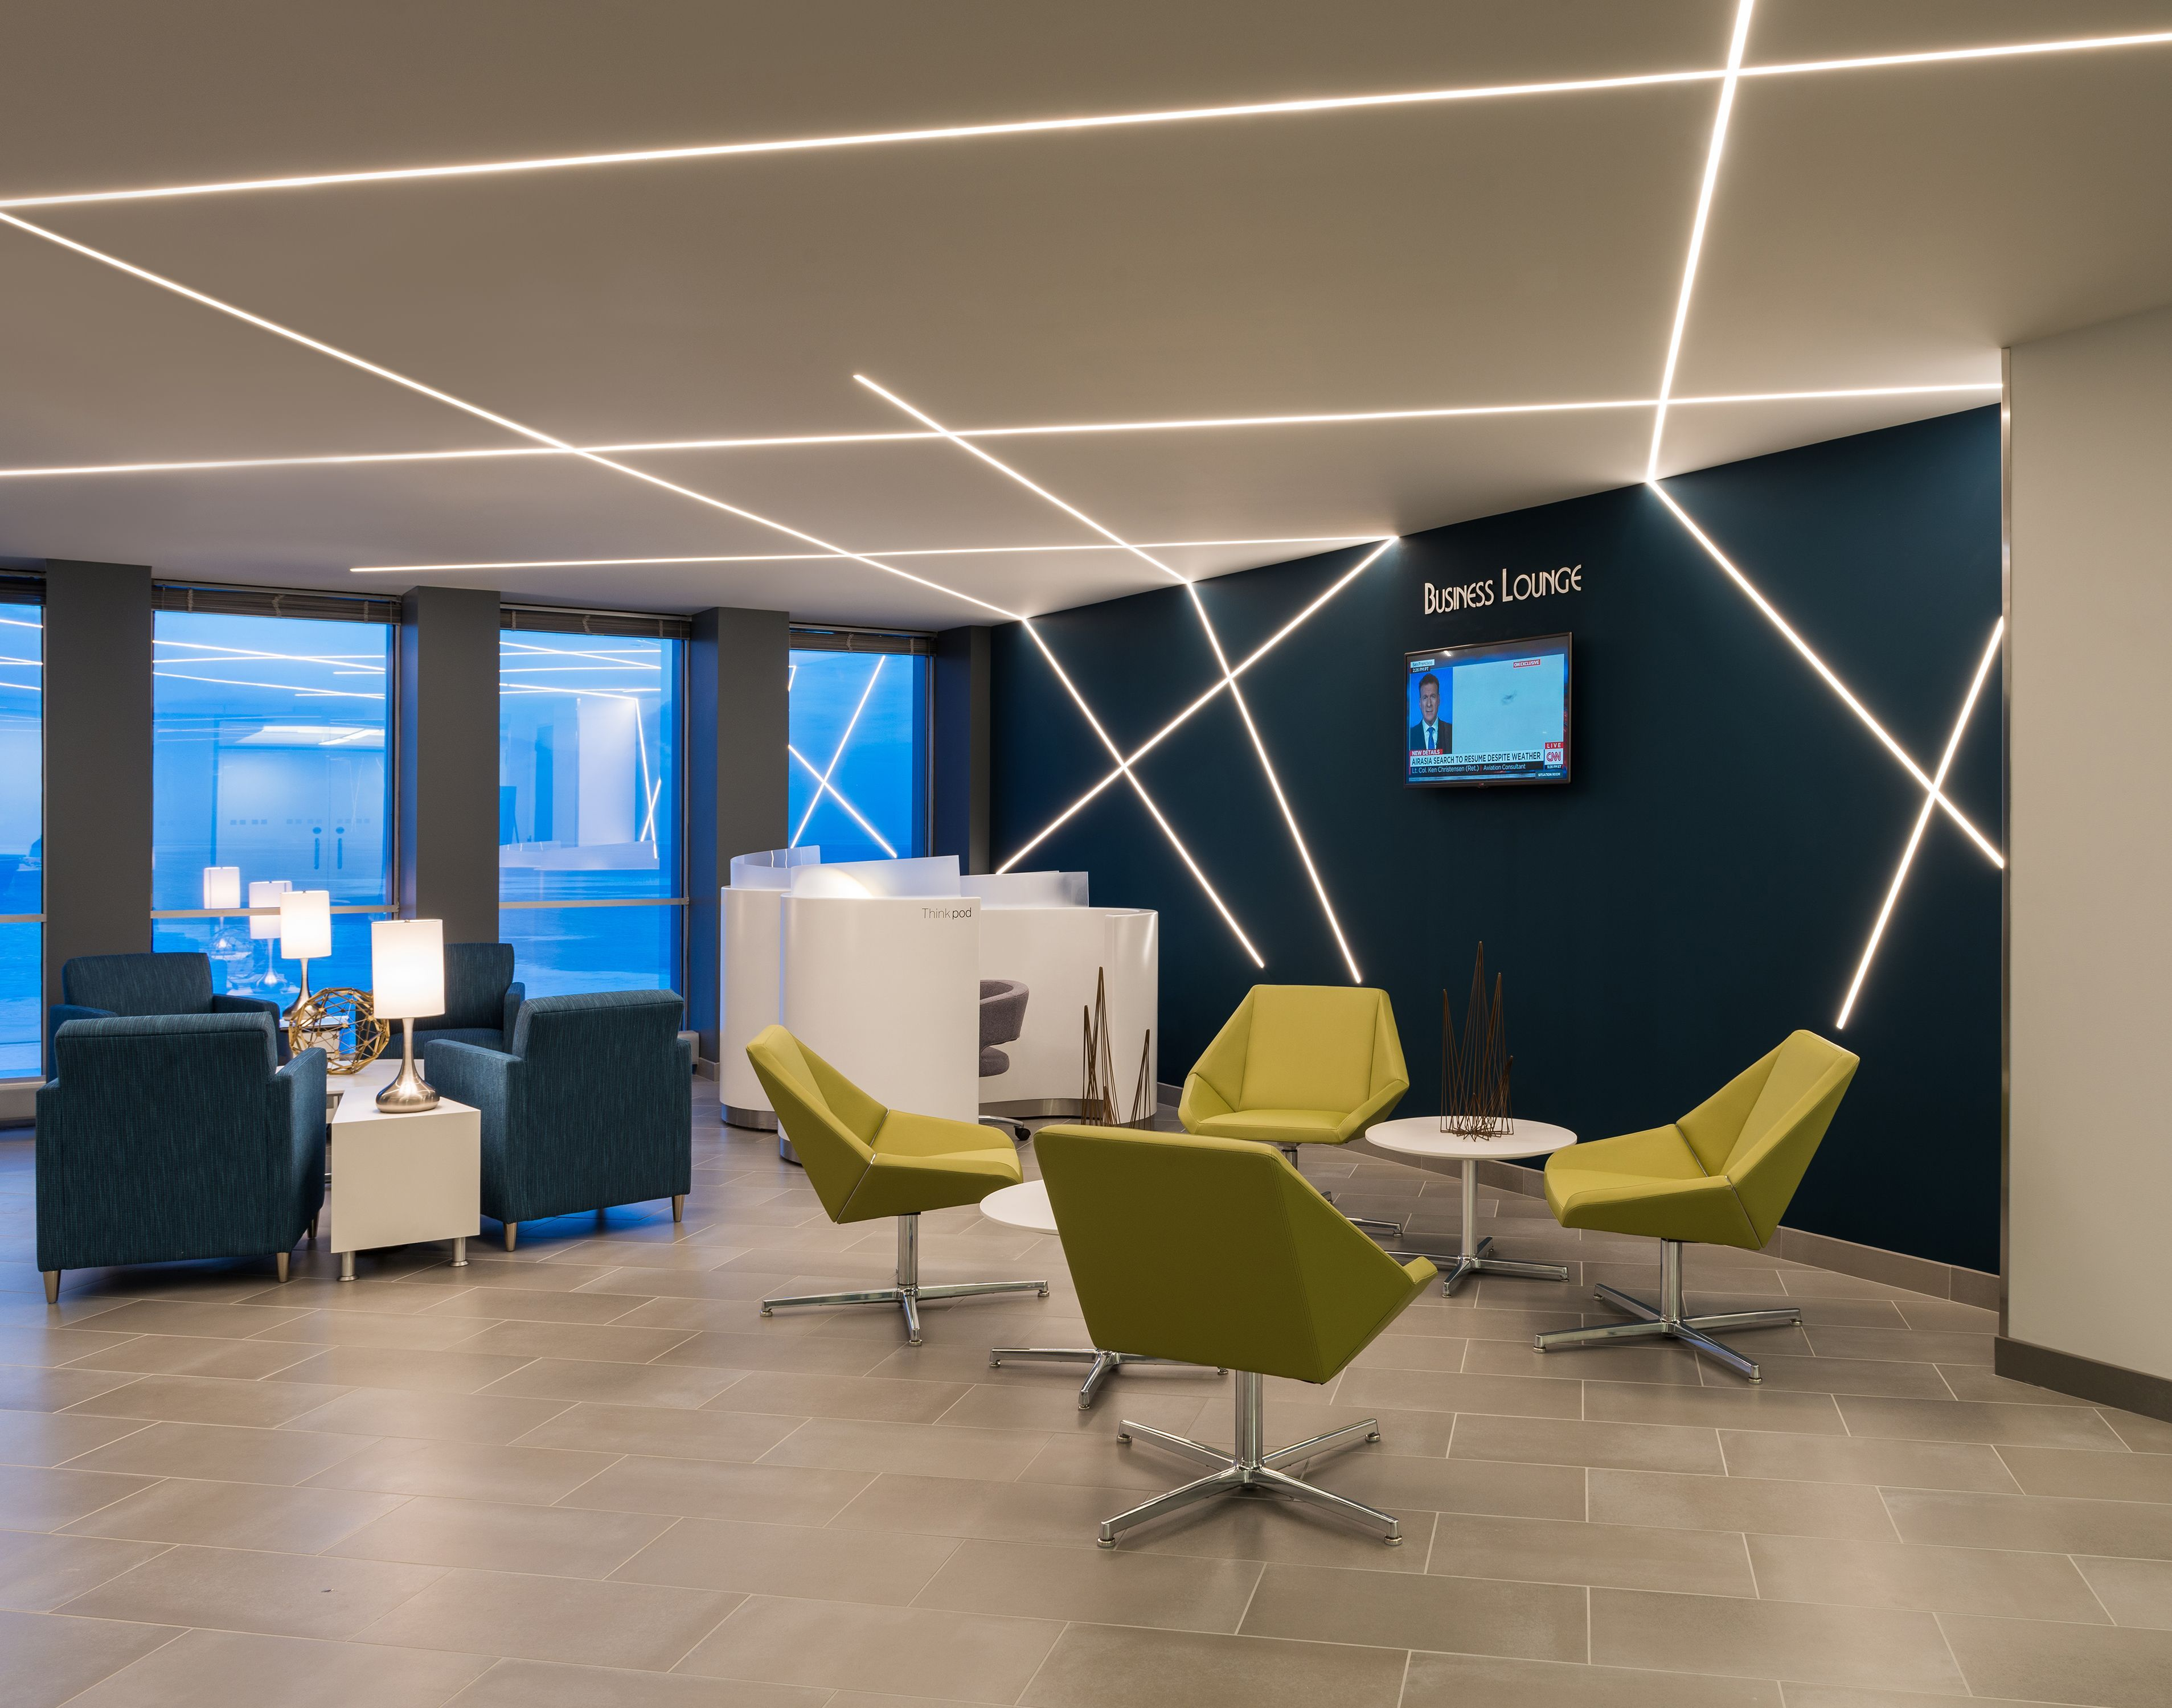 Office Design Train Your Brain With The Best Light You Can Get Office Lighting Design Office Interior Design Modern Office Lighting